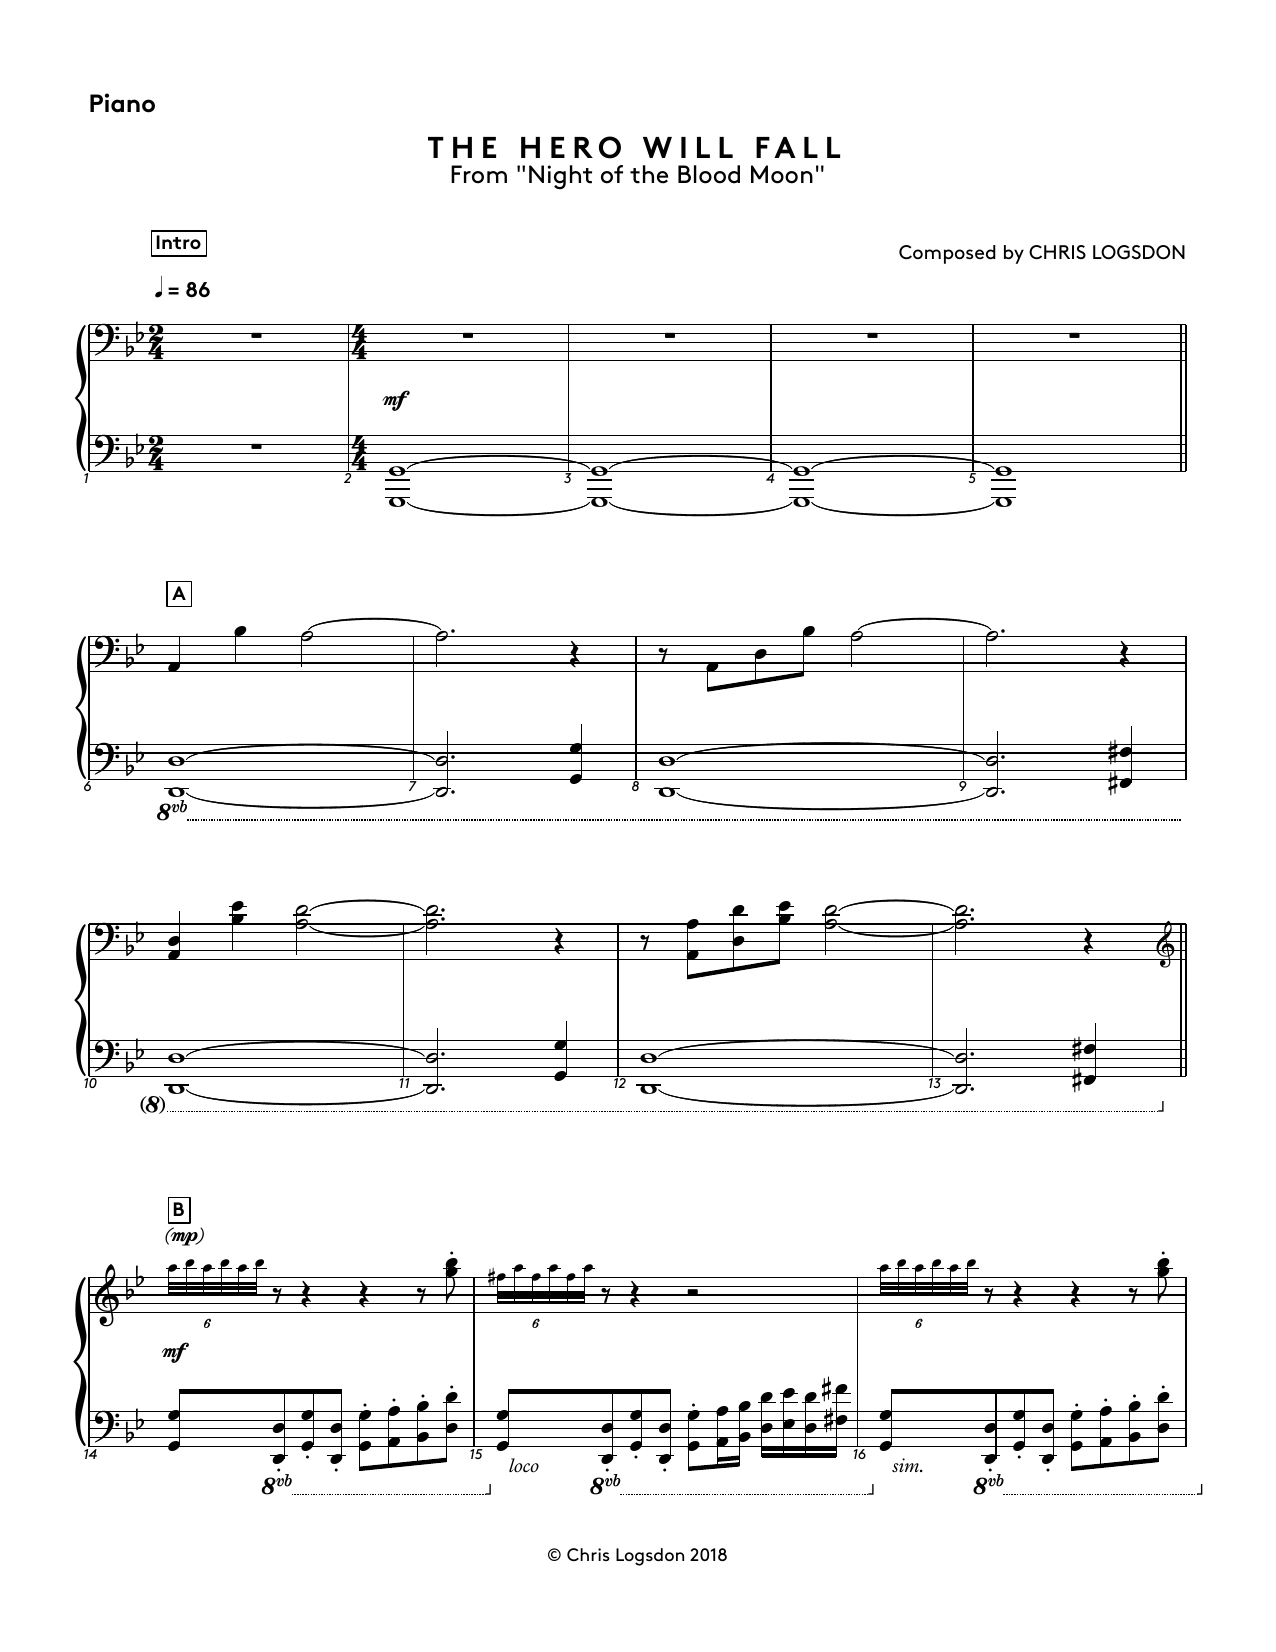 The Hero Will Fall (from Night of the Blood Moon) - Piano Sheet Music